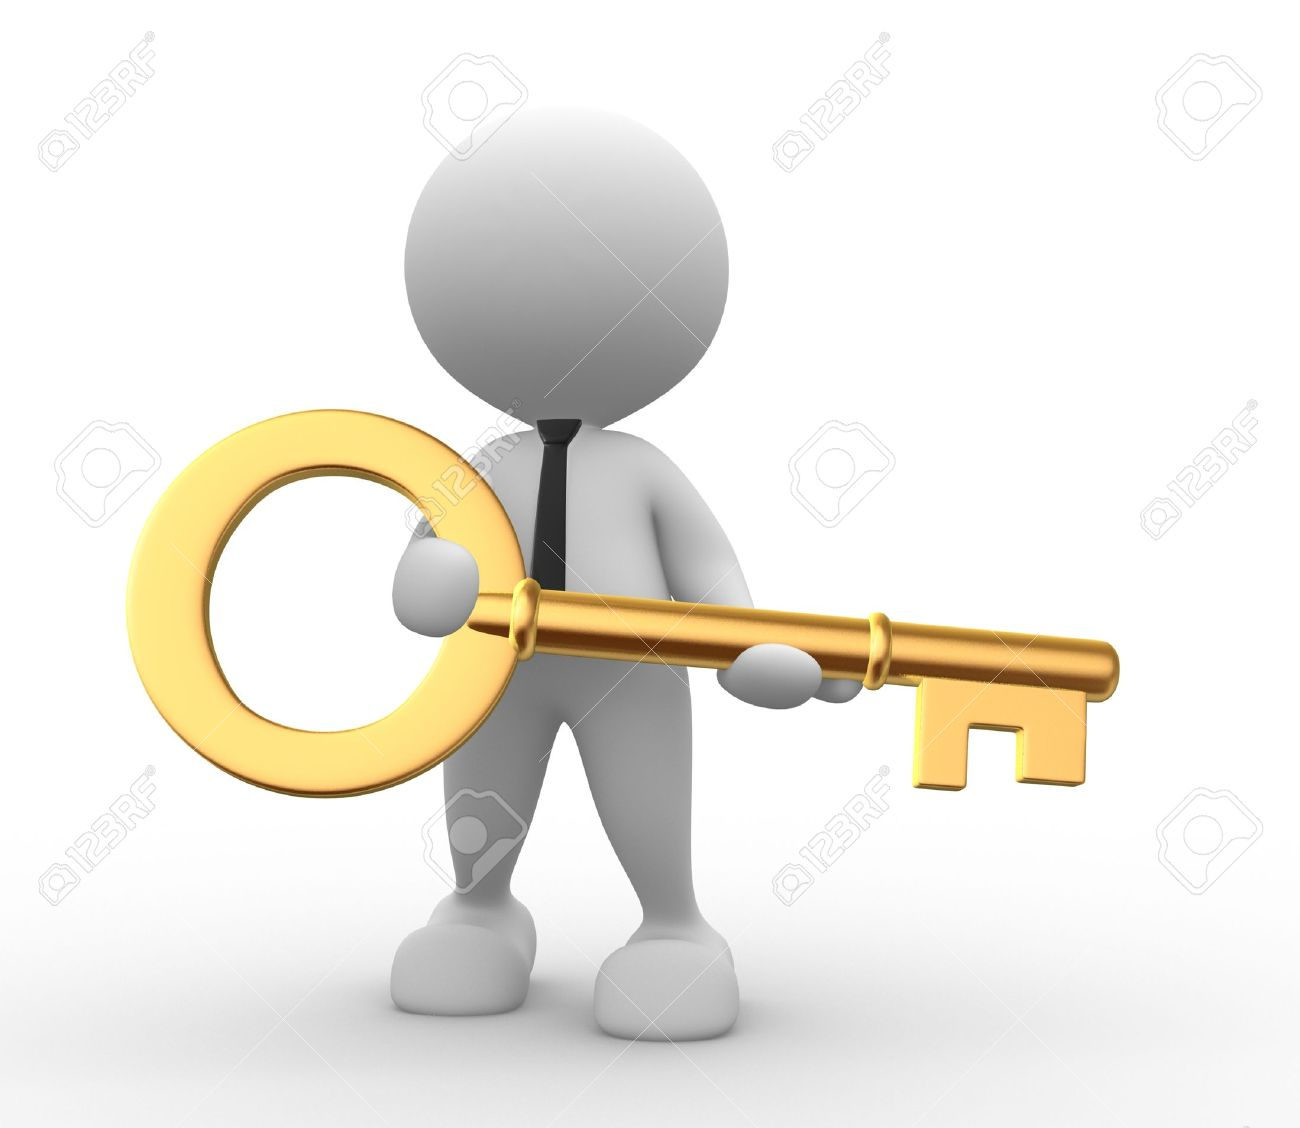 With golden key 3d rendering plan concept with golden key 3d rendering - Gold Key 3d People Man Person With A Gold Key